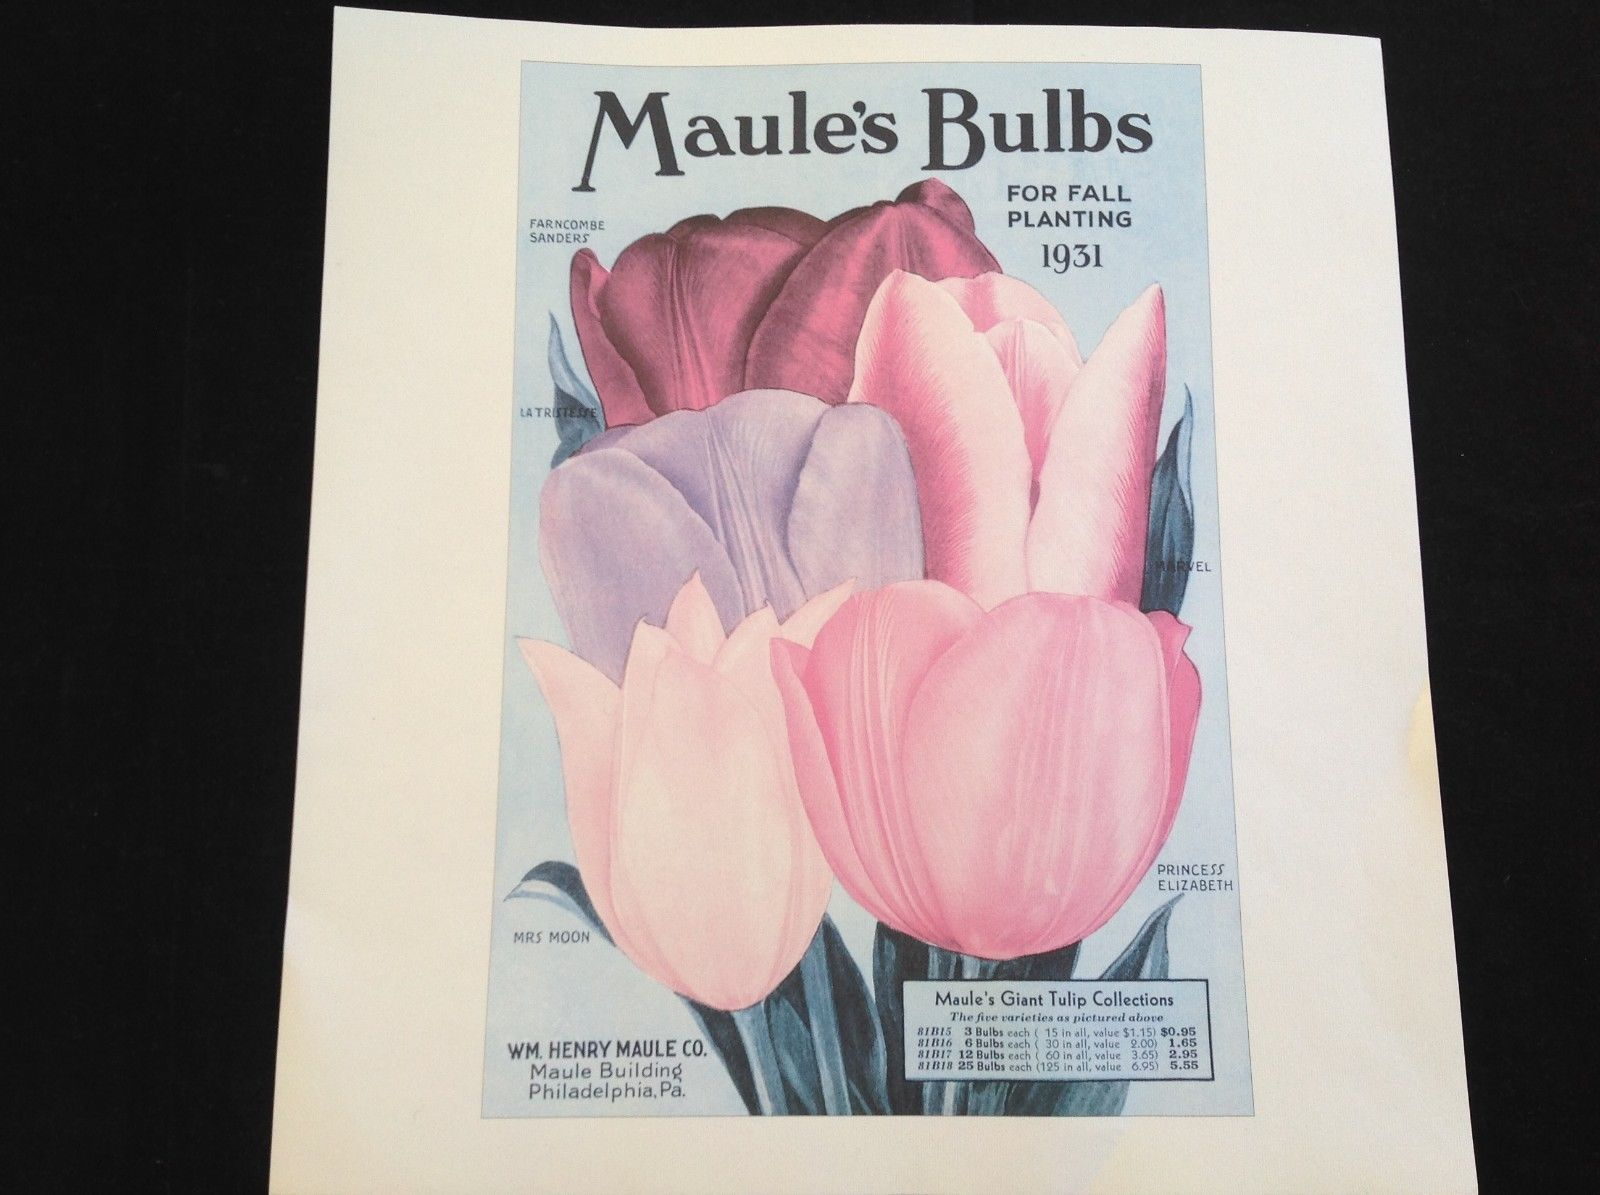 Maule's Bulb Catalog 1931 Tulips Reprint Poster rare misprint without yellow ink